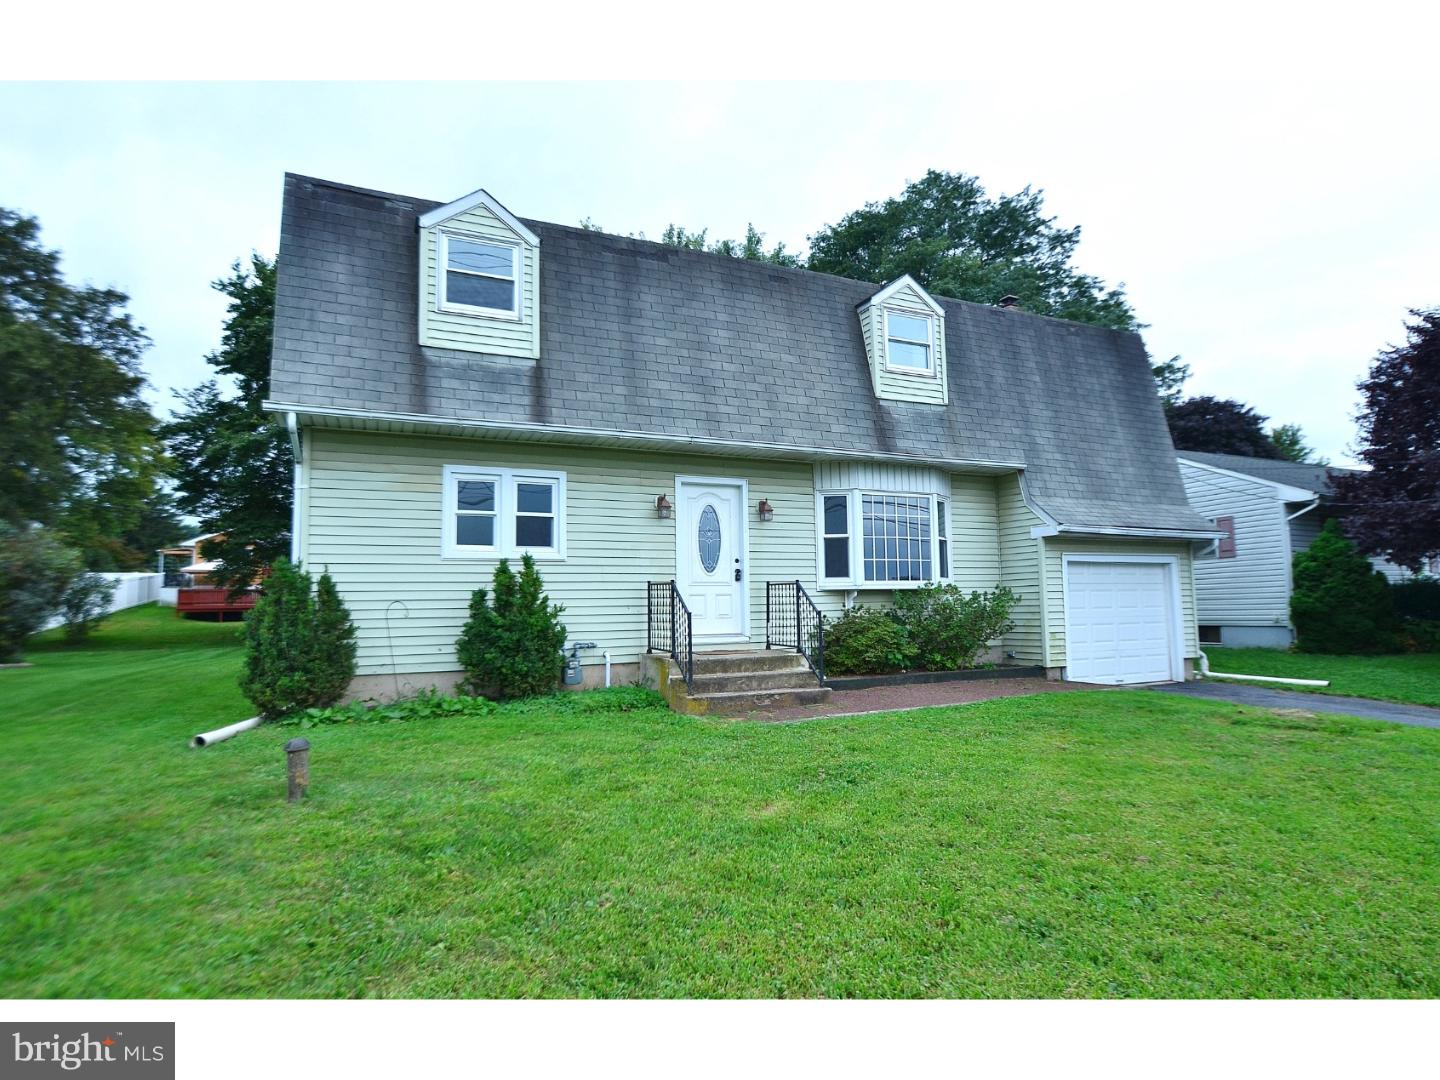 406 OLD MILL ROAD, EASTON, PA 18040